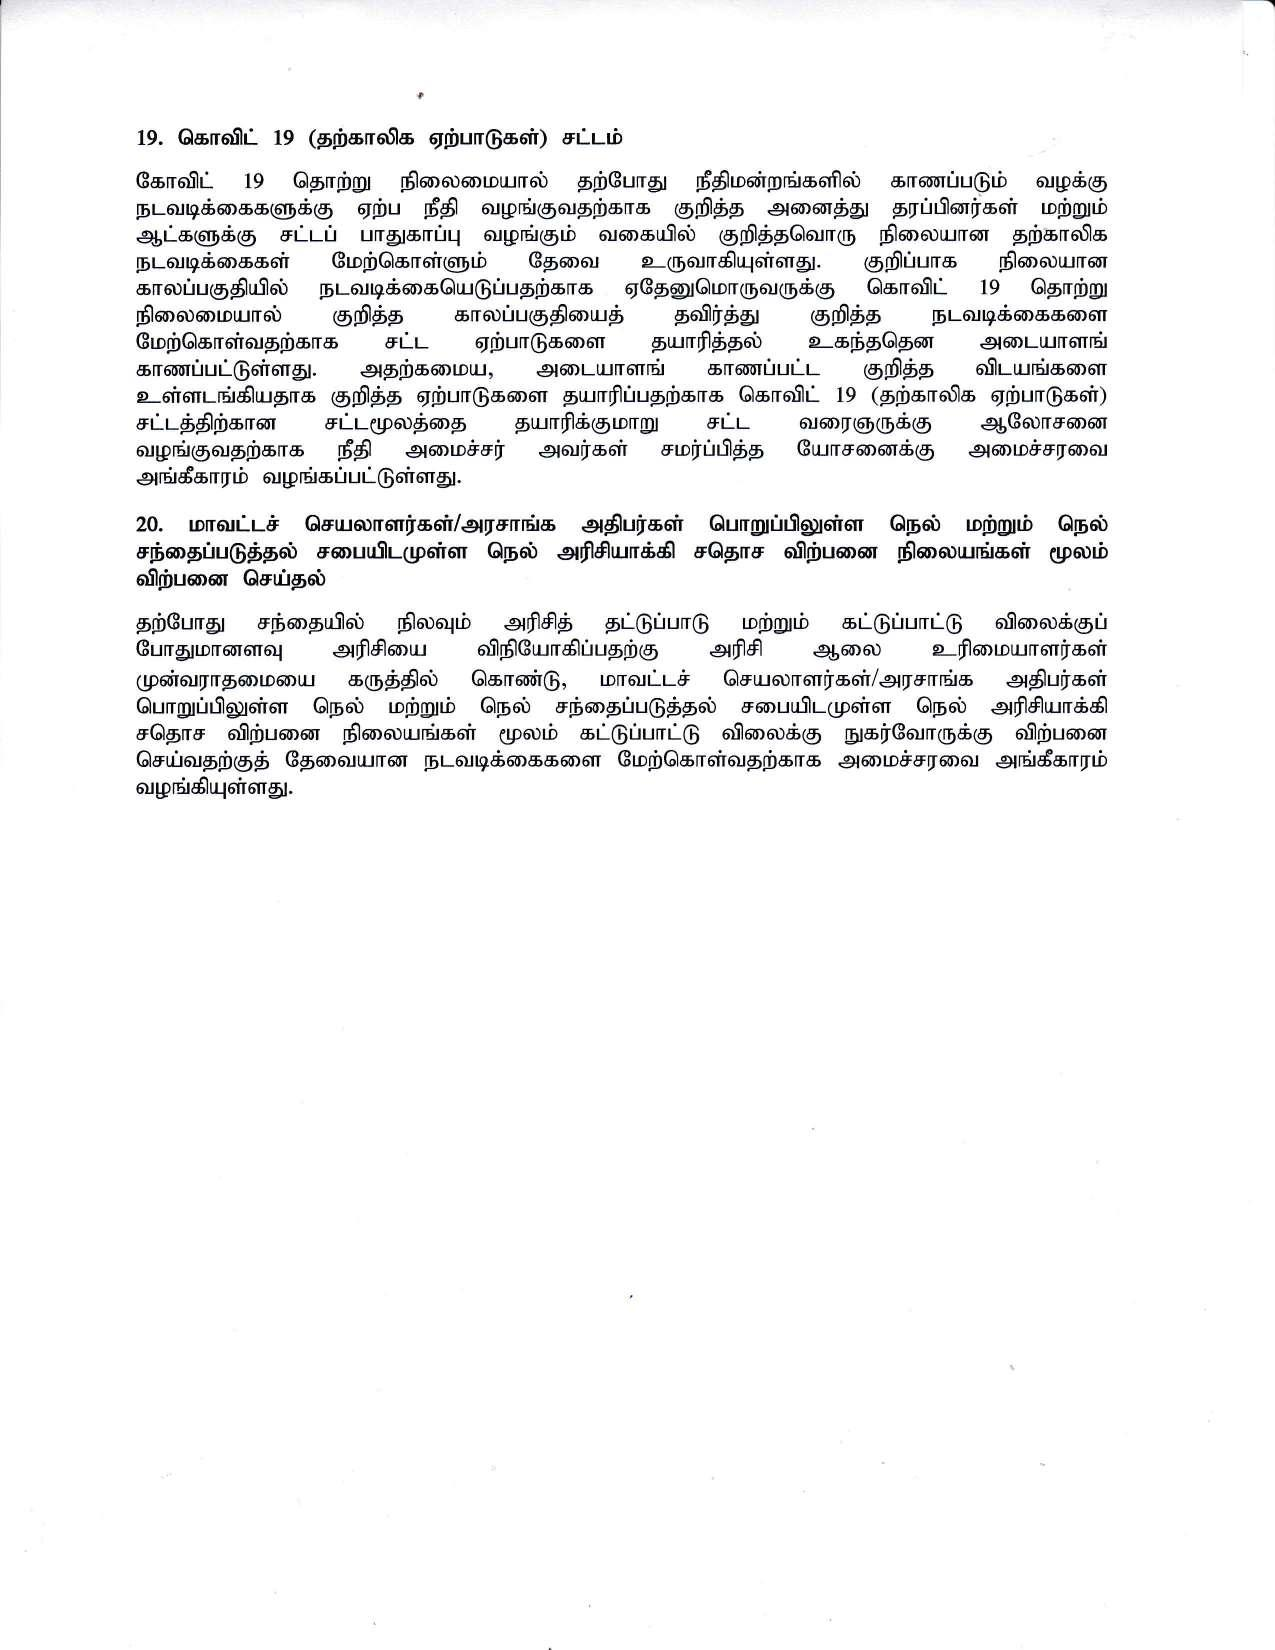 Cabinet Decsion on 09.11.2020 Tamil page 007